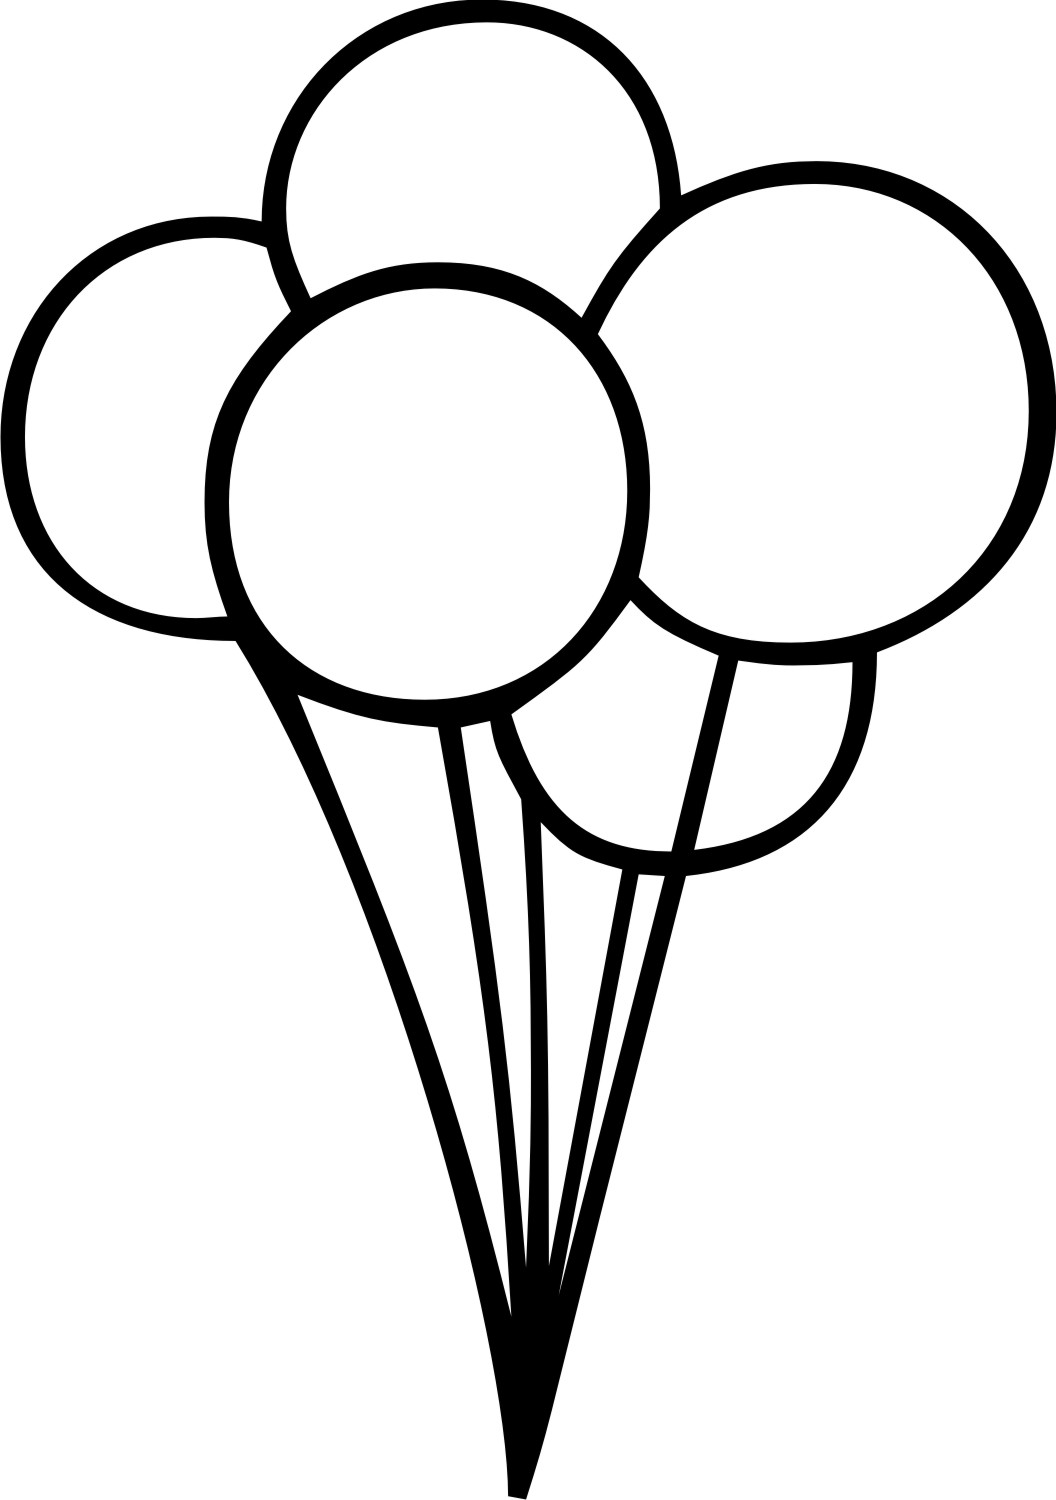 Free Balloon Outline, Download Free Clip Art, Free Clip Art.